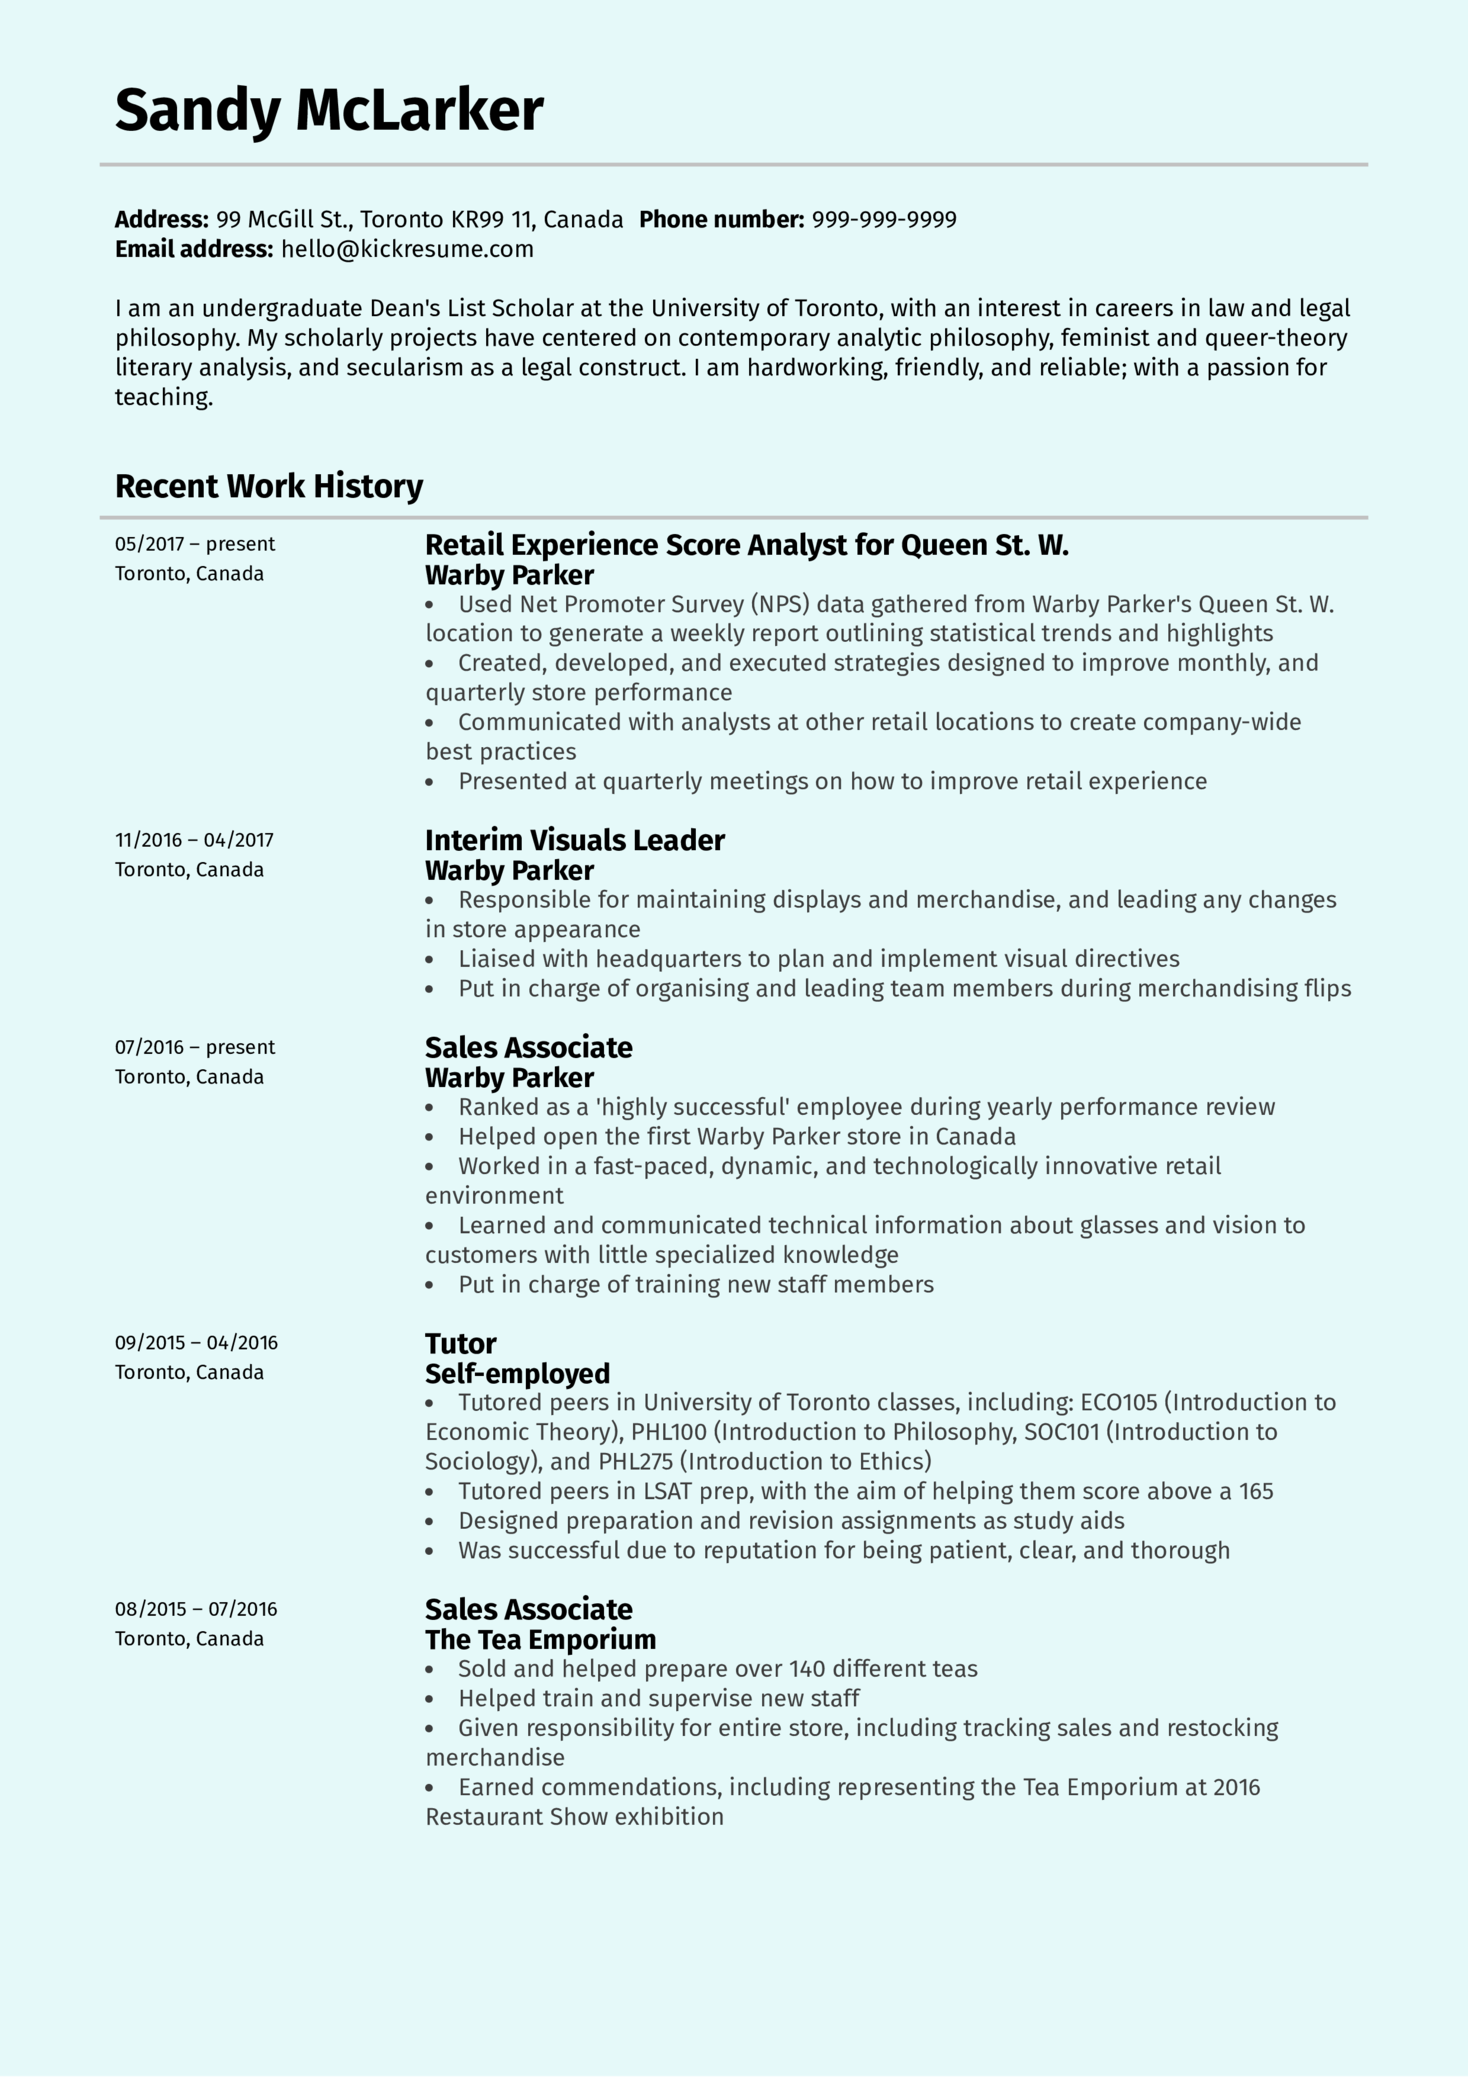 Resume Examples By Real People Retail Experience Analyst